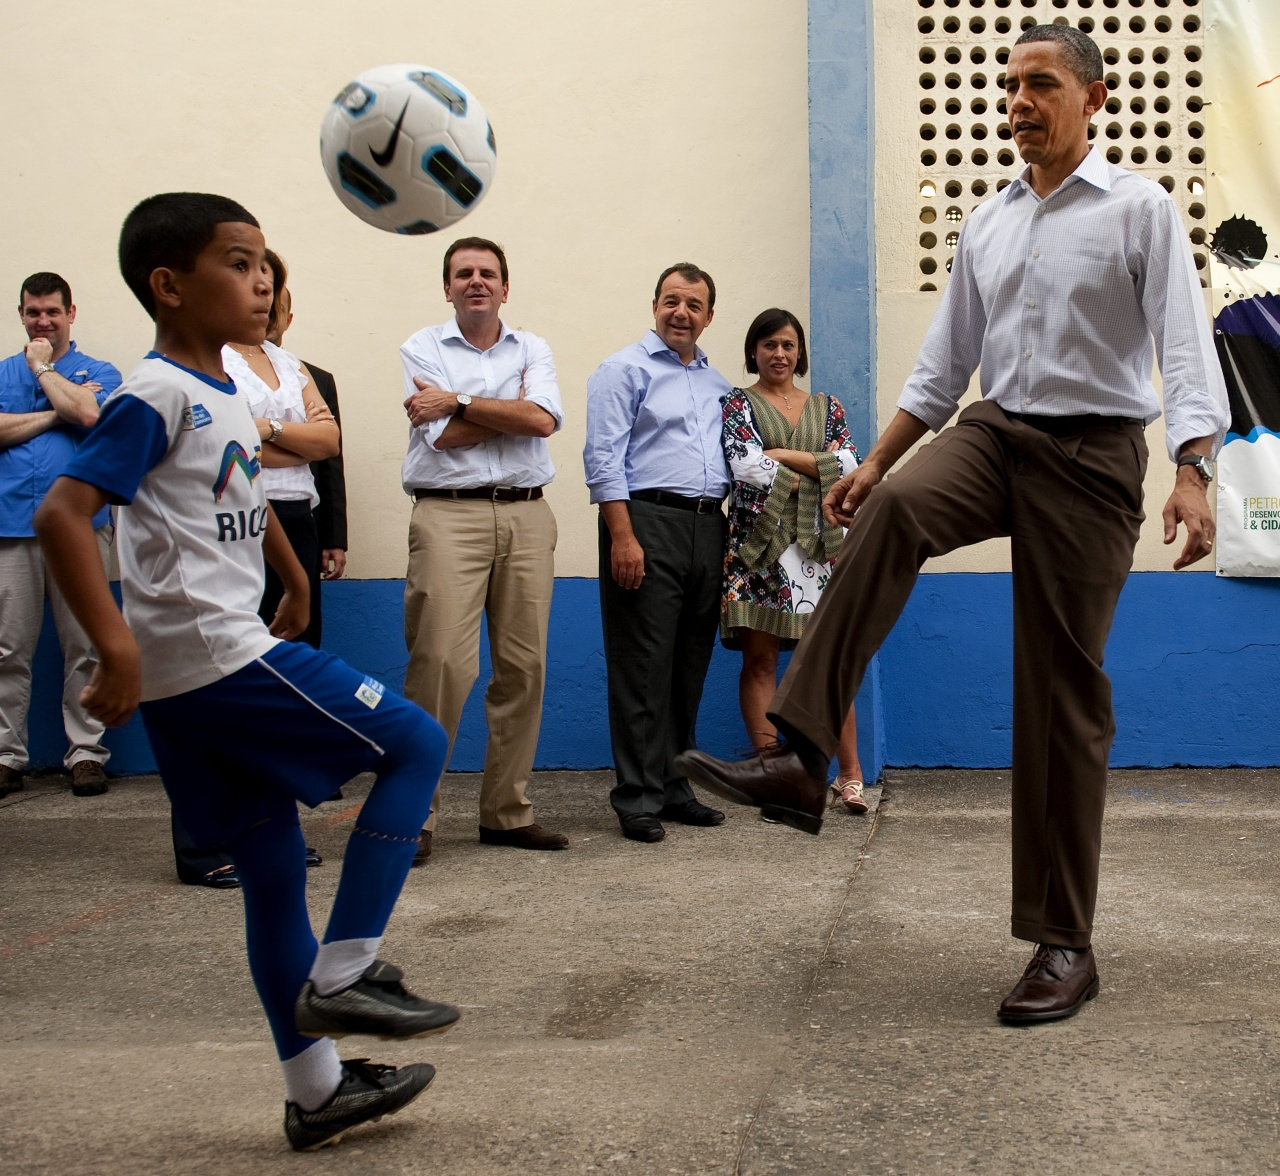 "U.S. President Barack Obama plays soccer while visiting the ""City of God"" favela in Rio de Janiero, Brazil, on March 20, 2011. (Saul Loeb/Getty Images)"